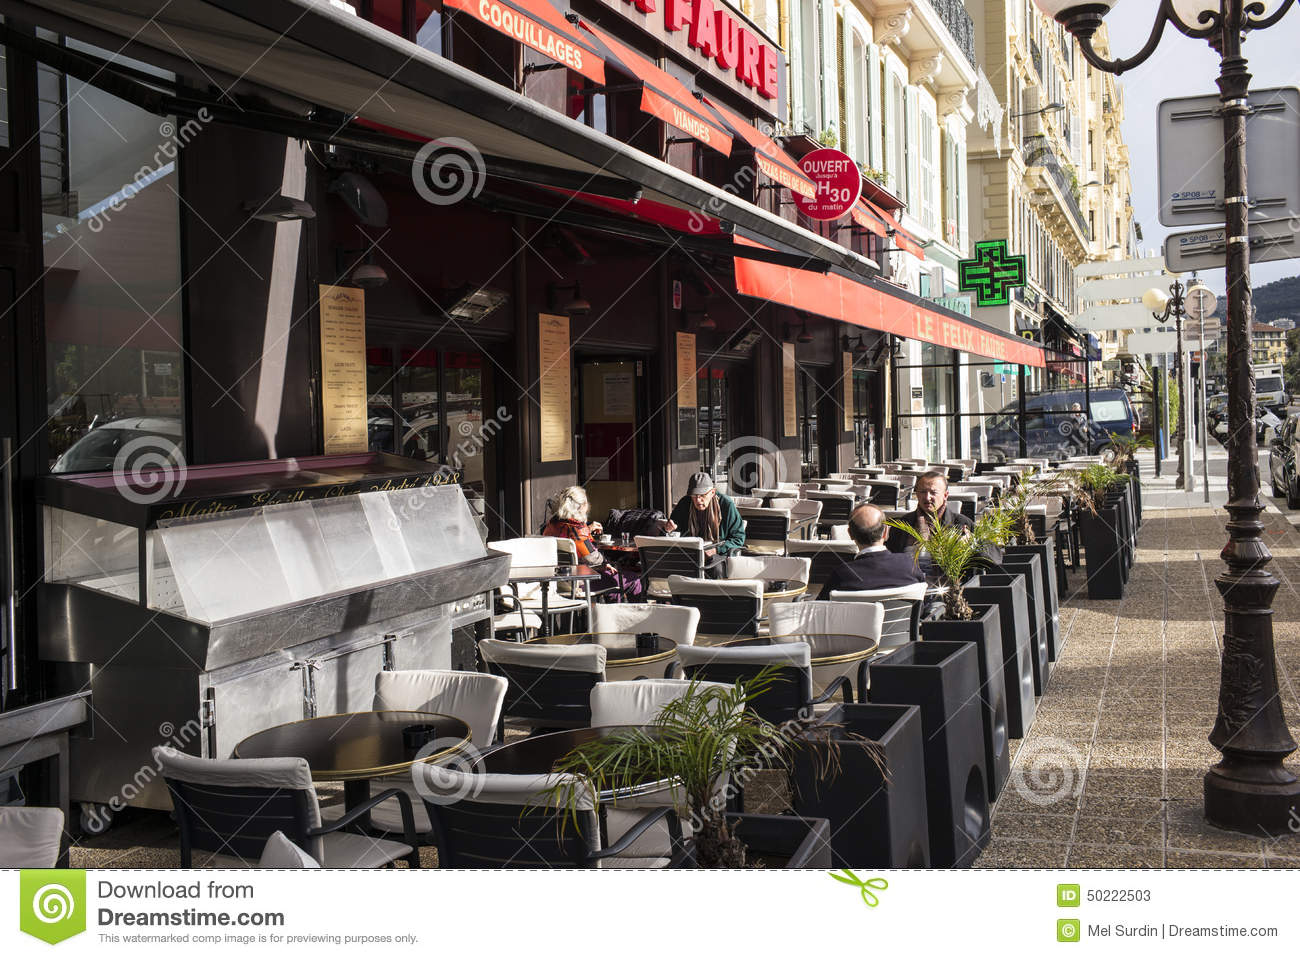 Outdoor Dining Nice France Editorial Stock Photo Image  : outdoor dining nice france street red canopy 50222503 from www.dreamstime.com size 1300 x 958 jpeg 223kB